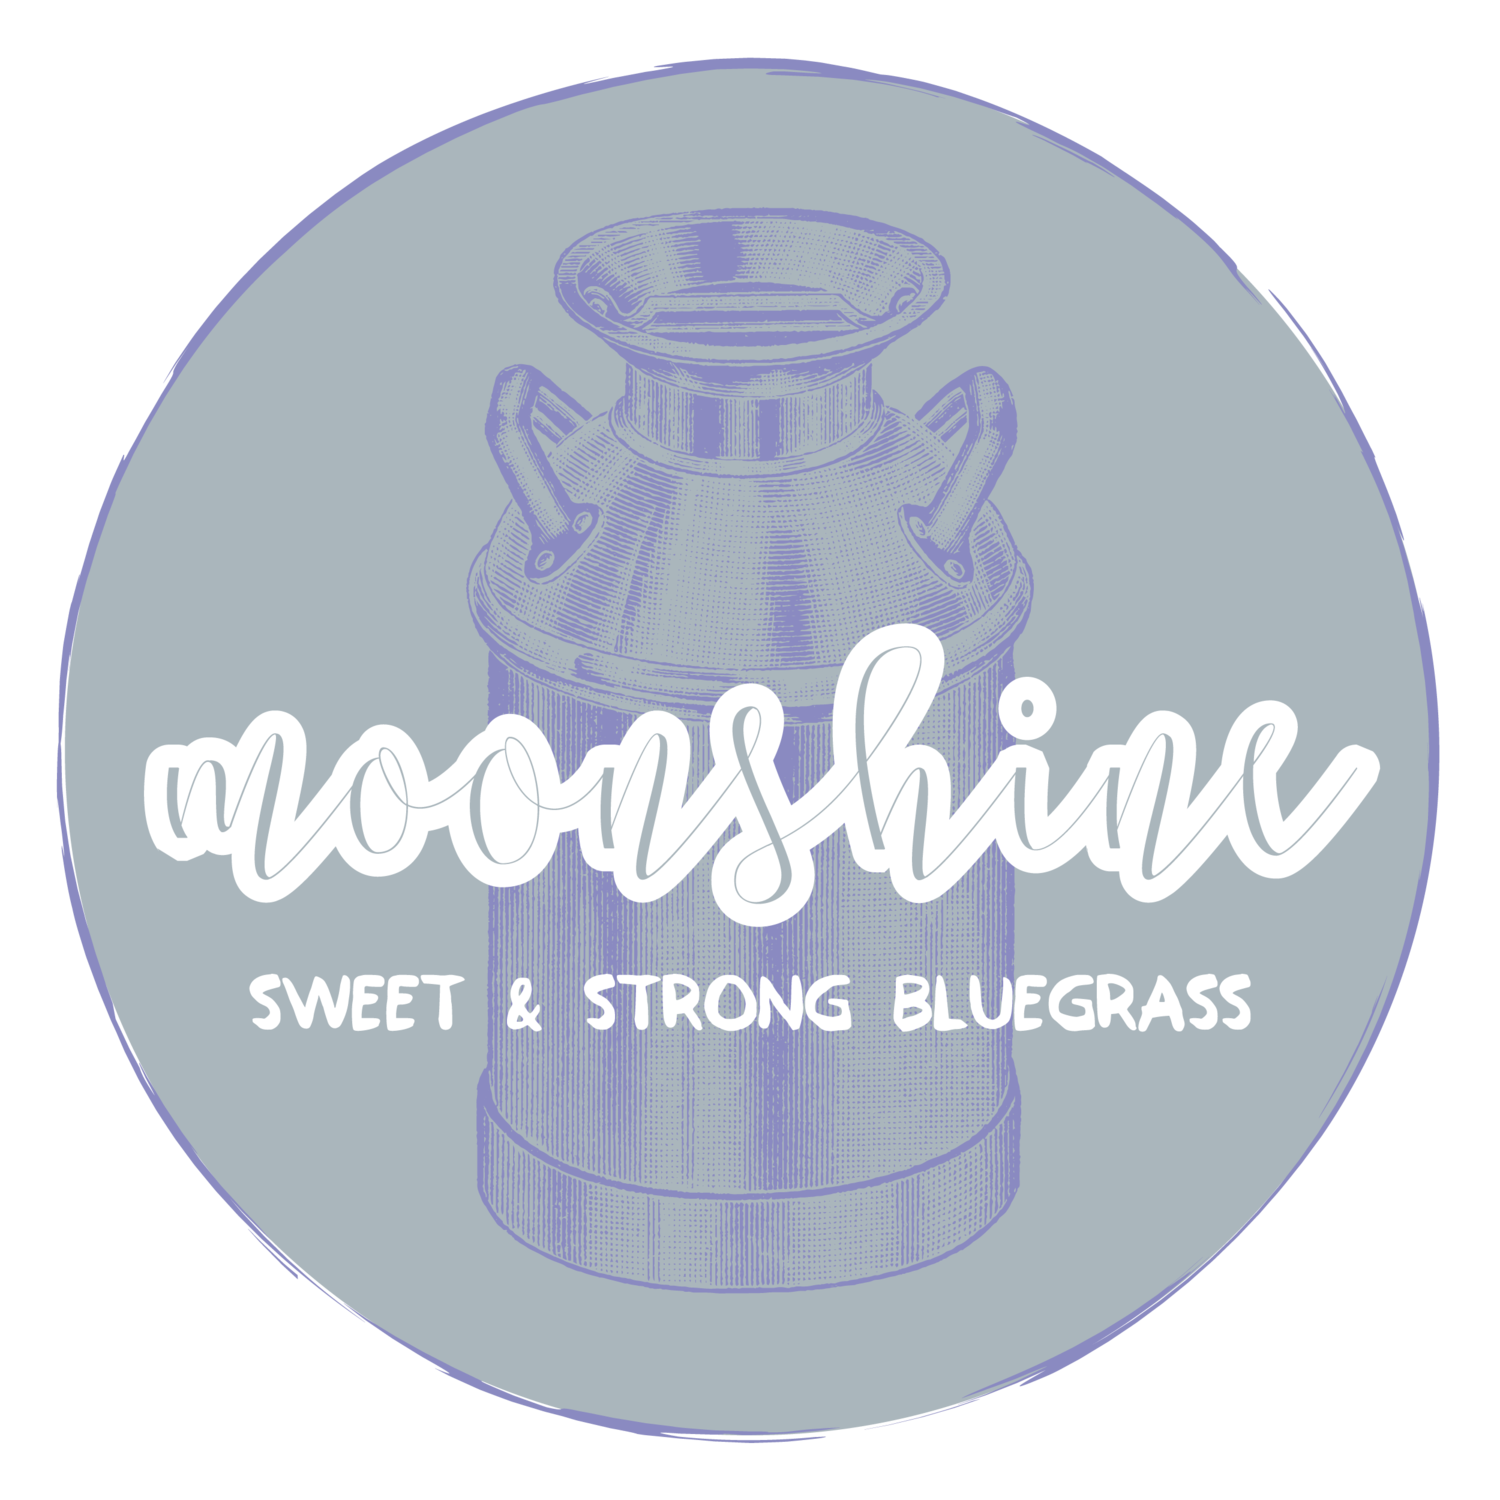 moonshine bluegrass